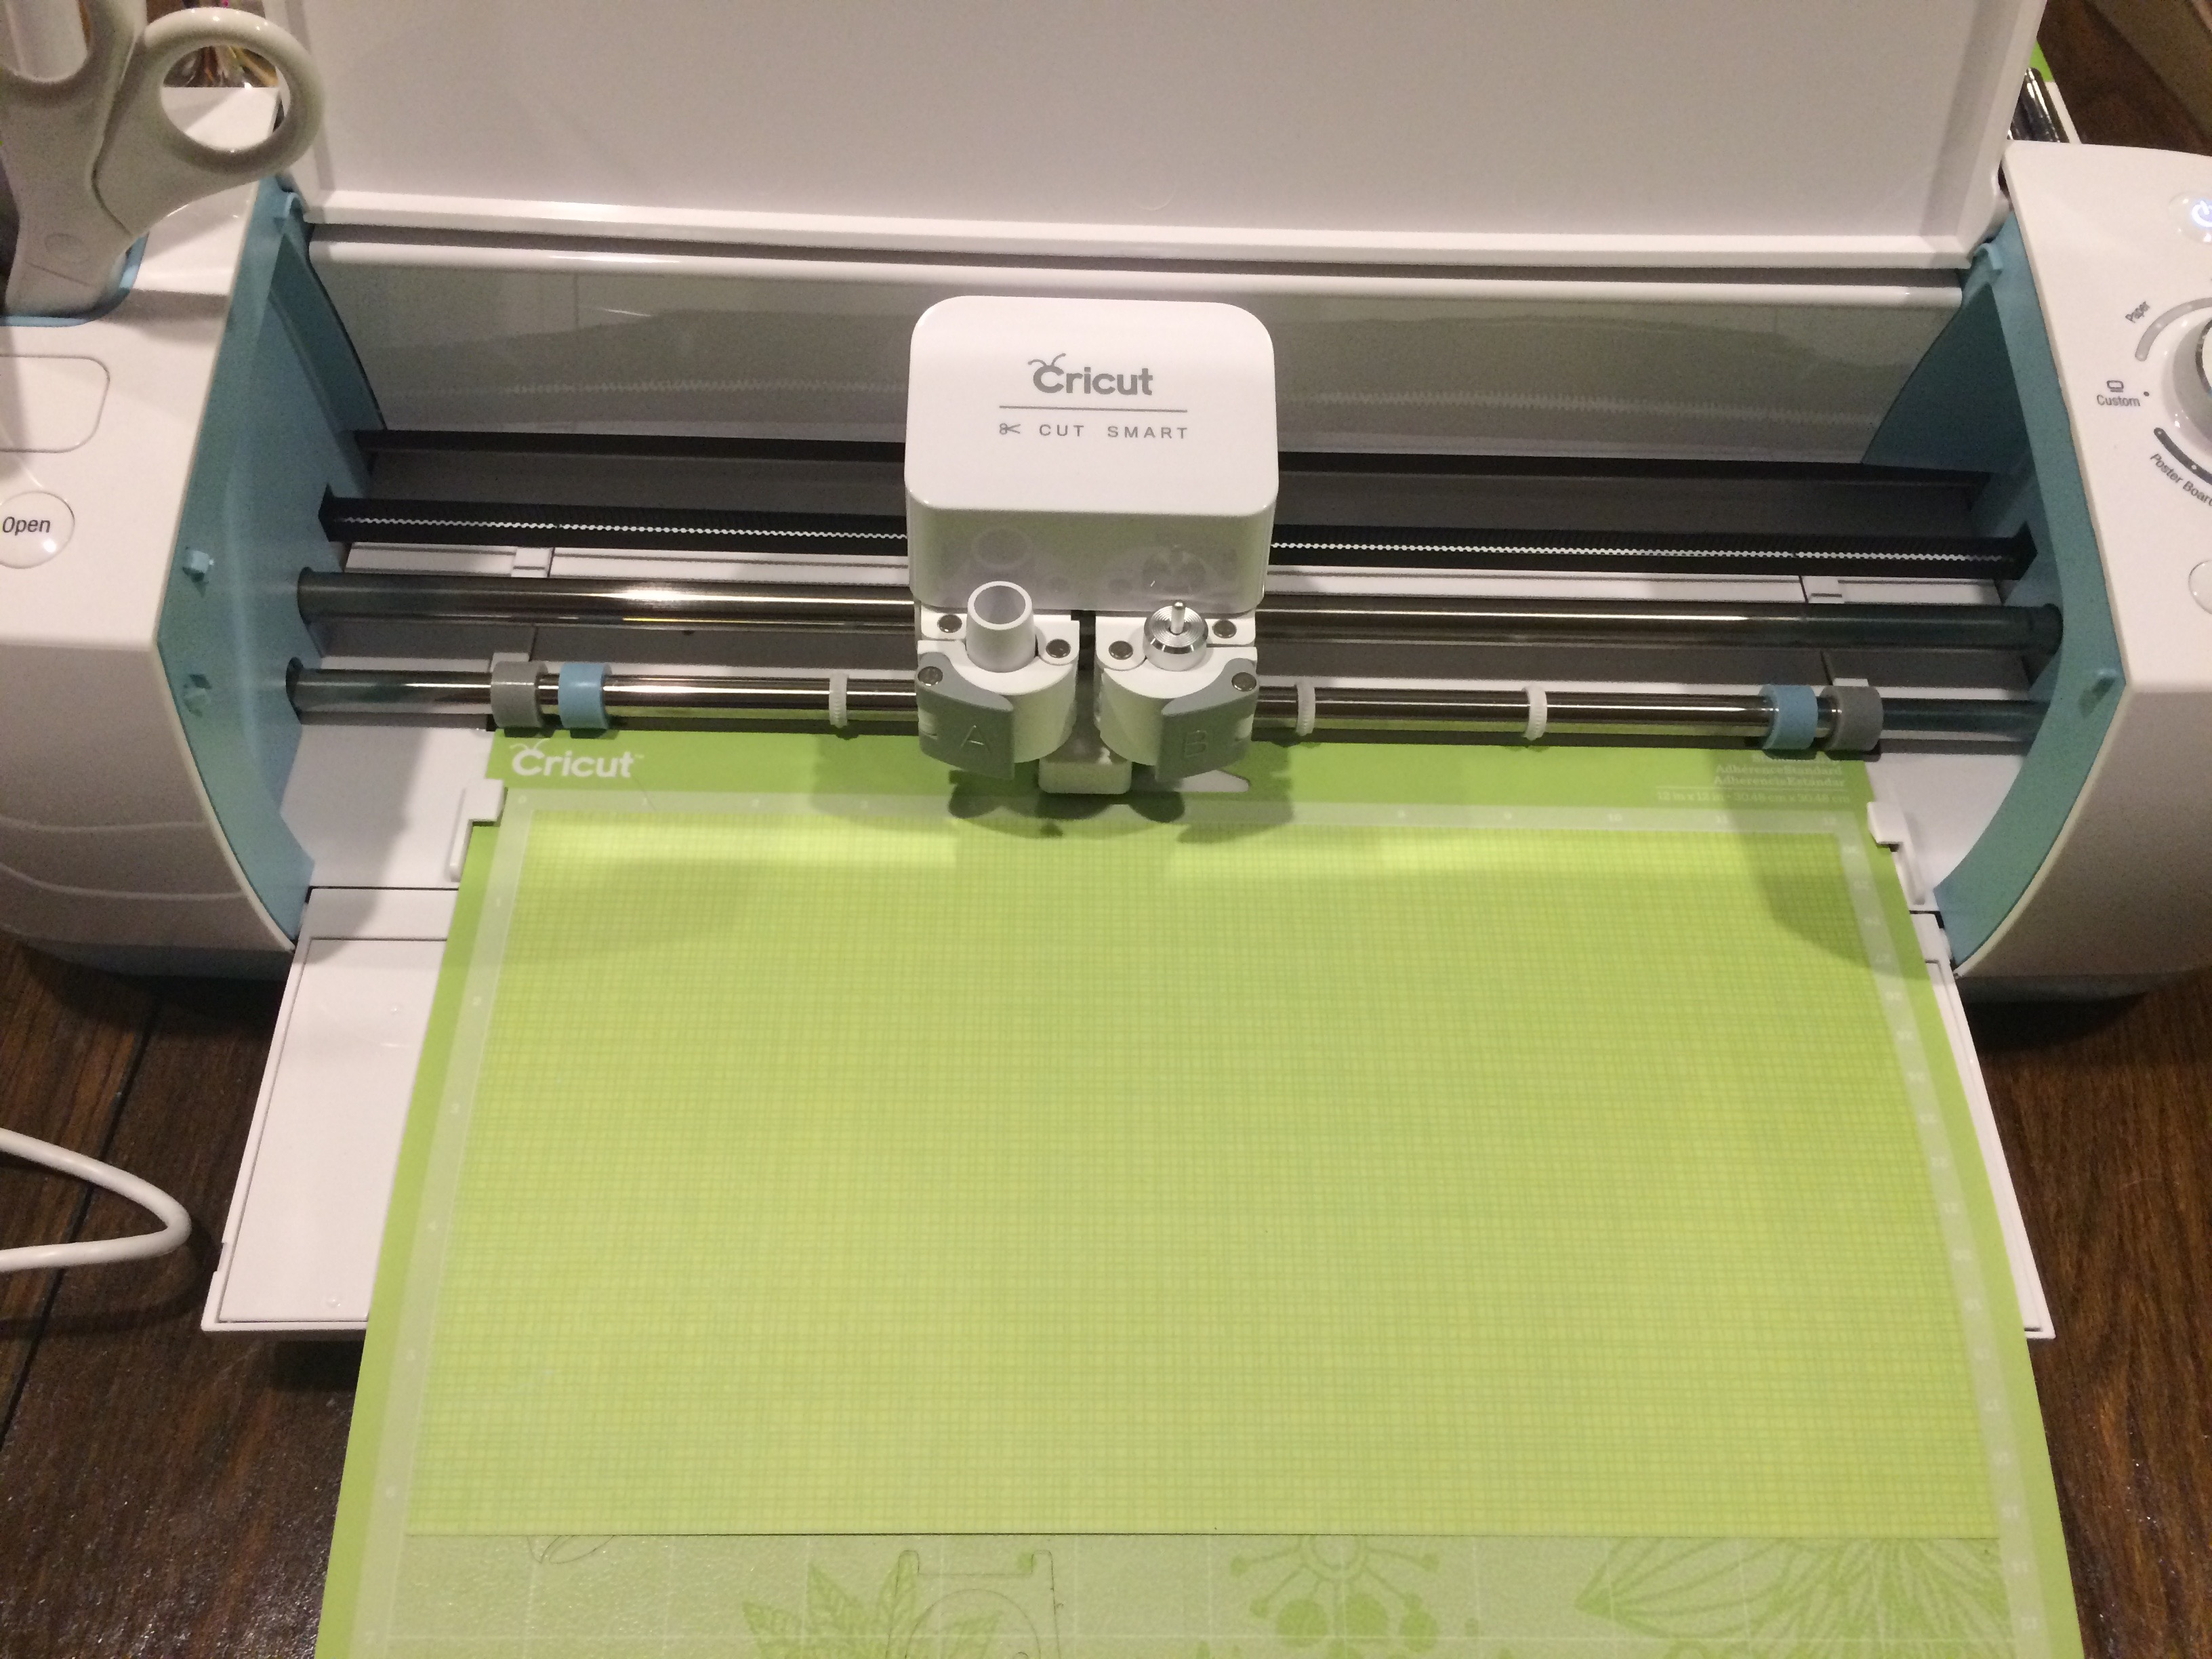 Using a Cricut Explore to craft DIY vinyl projects and homemade cards